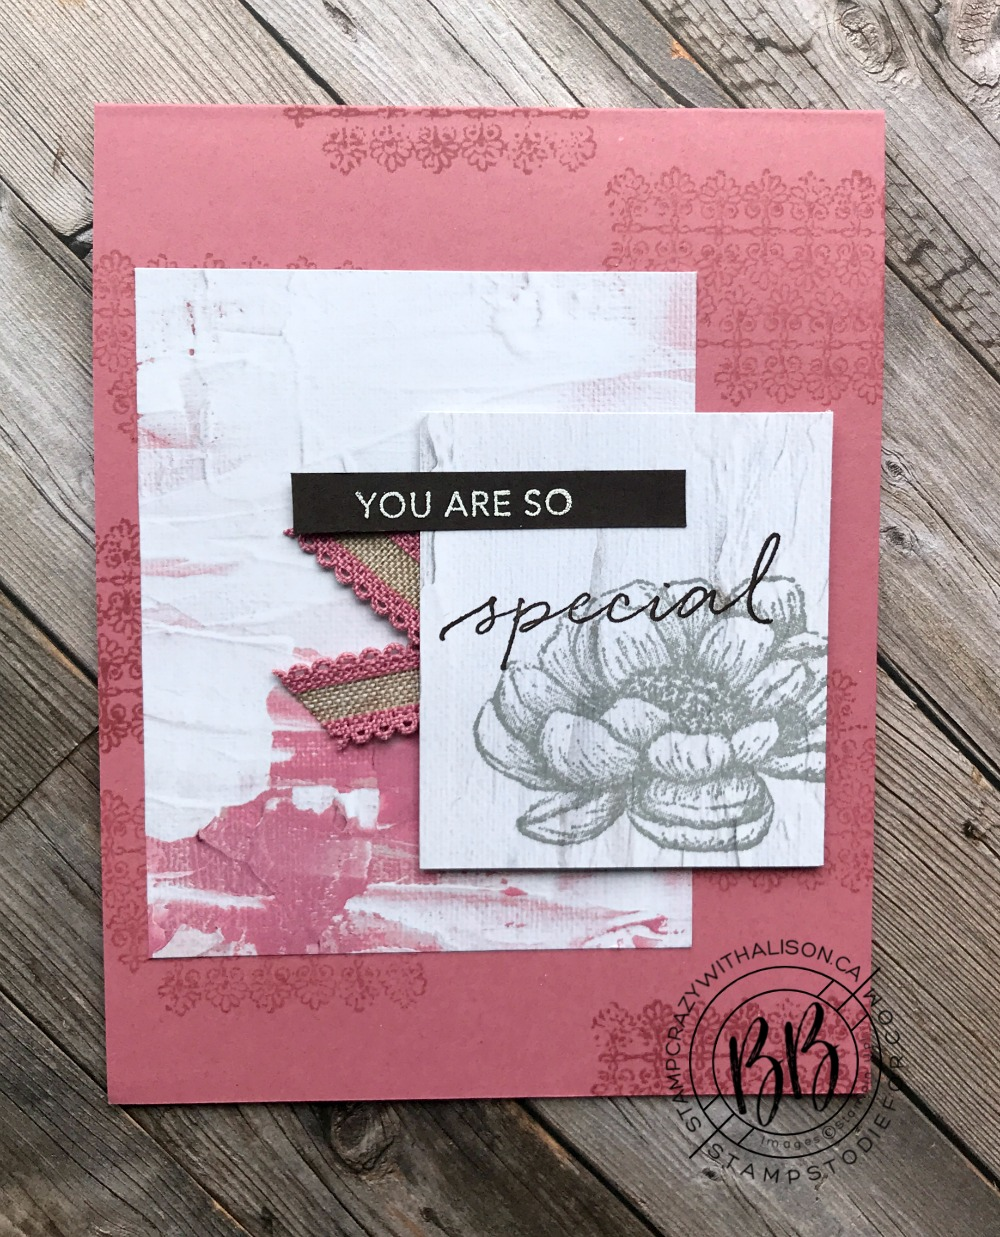 Sunday Sketches with the Tasteful Touches Stamp Set from Stampin' Up!®